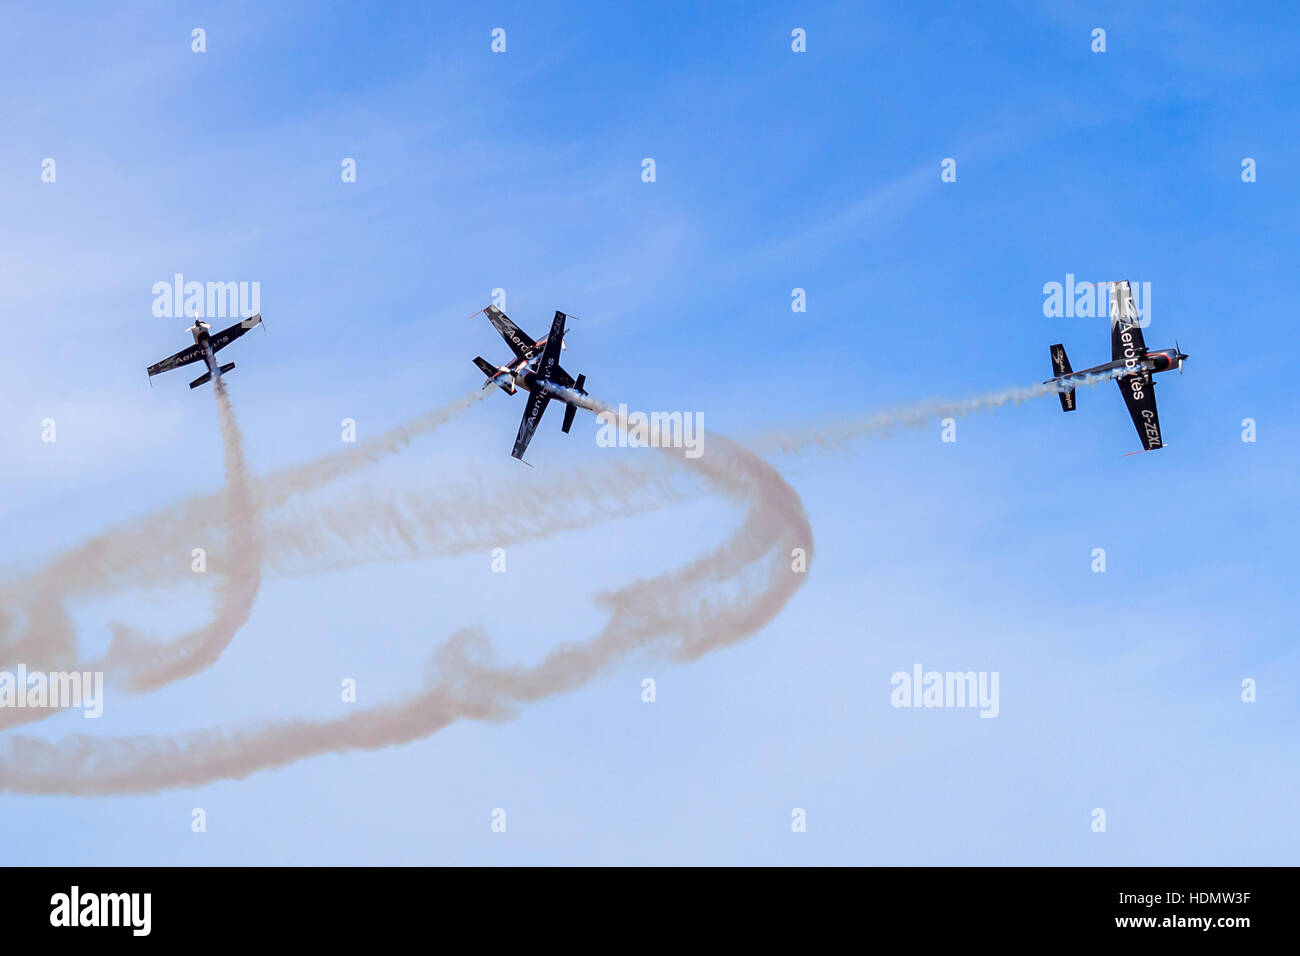 The Blades Aerobatic team performing their display maneuvers at the southport airshow - Stock Image